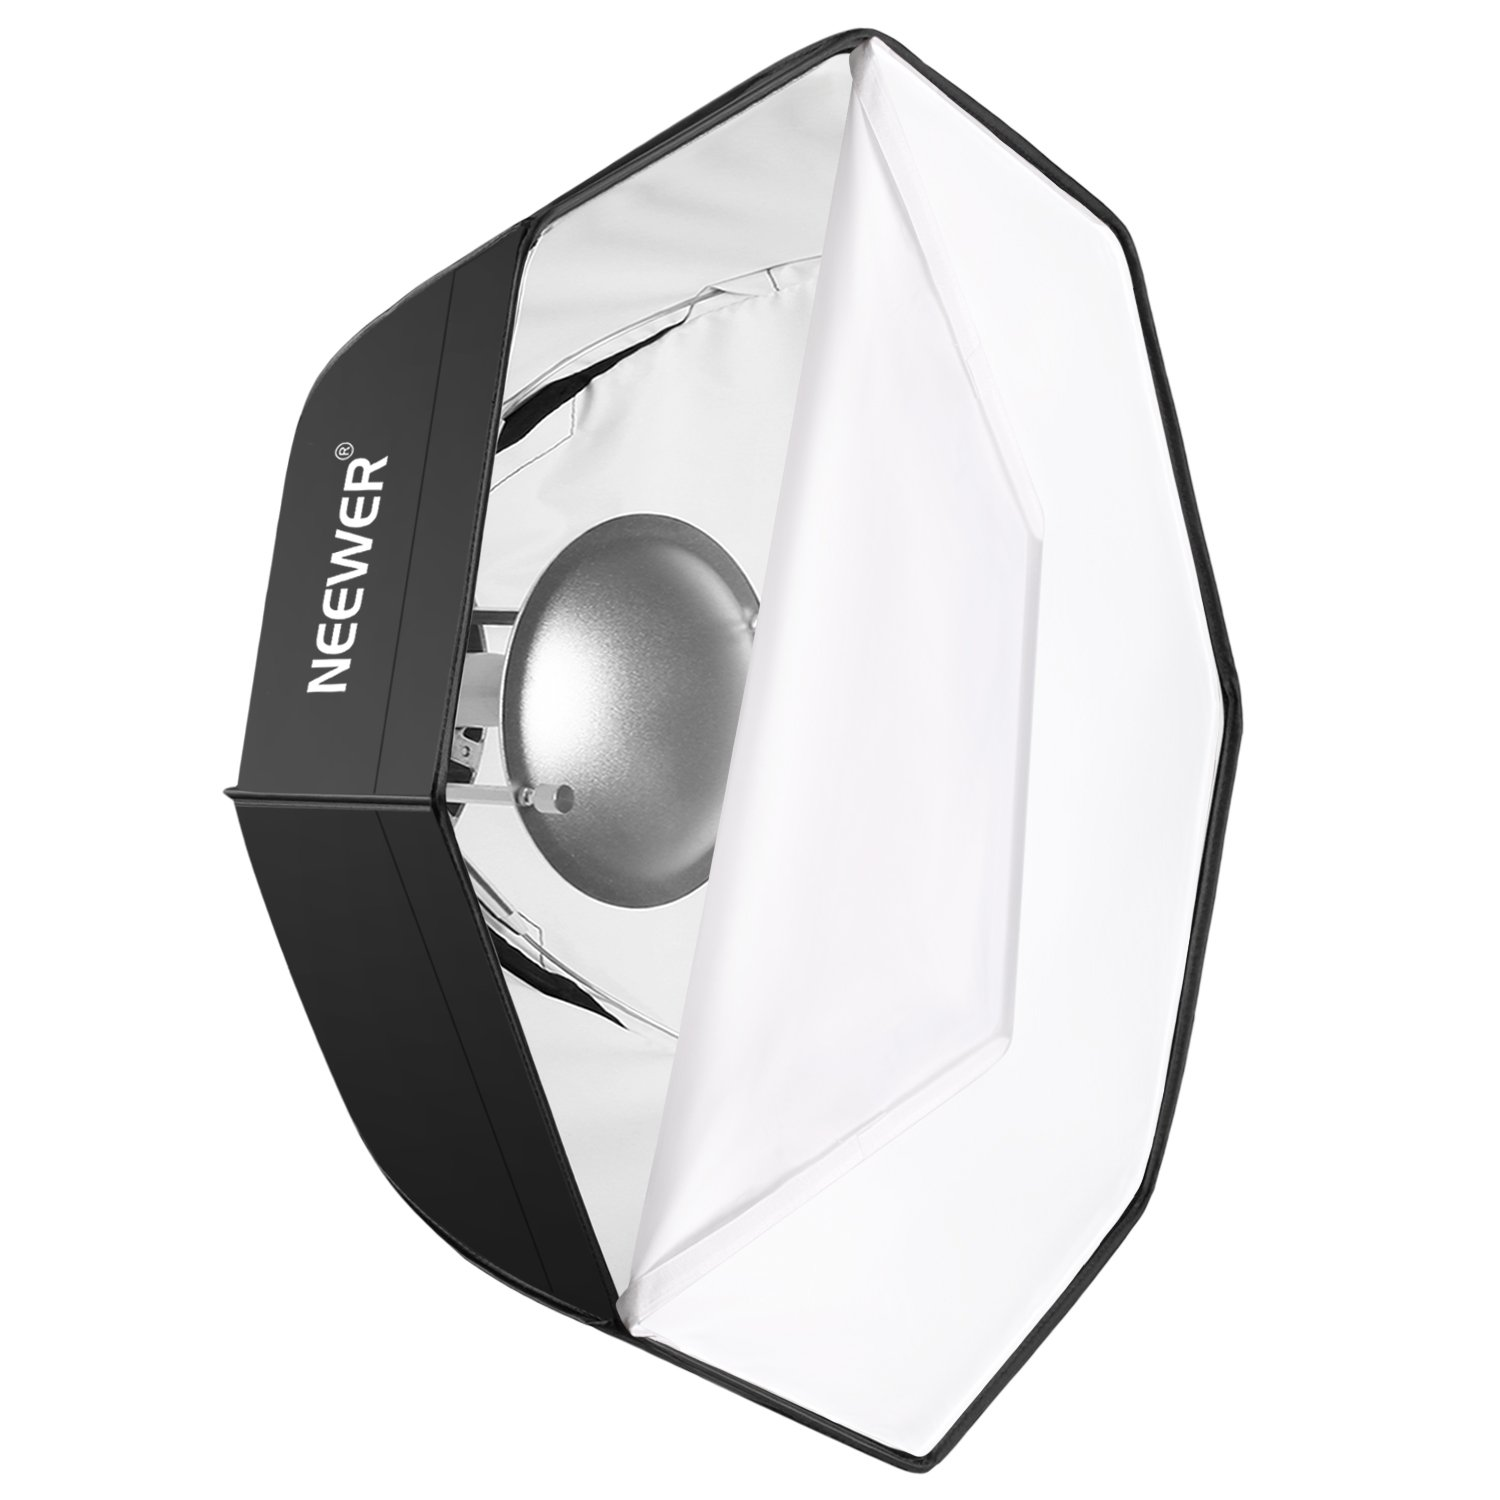 Neewer Photo Studio 24 inches/60 centimeters Beauty Dish and